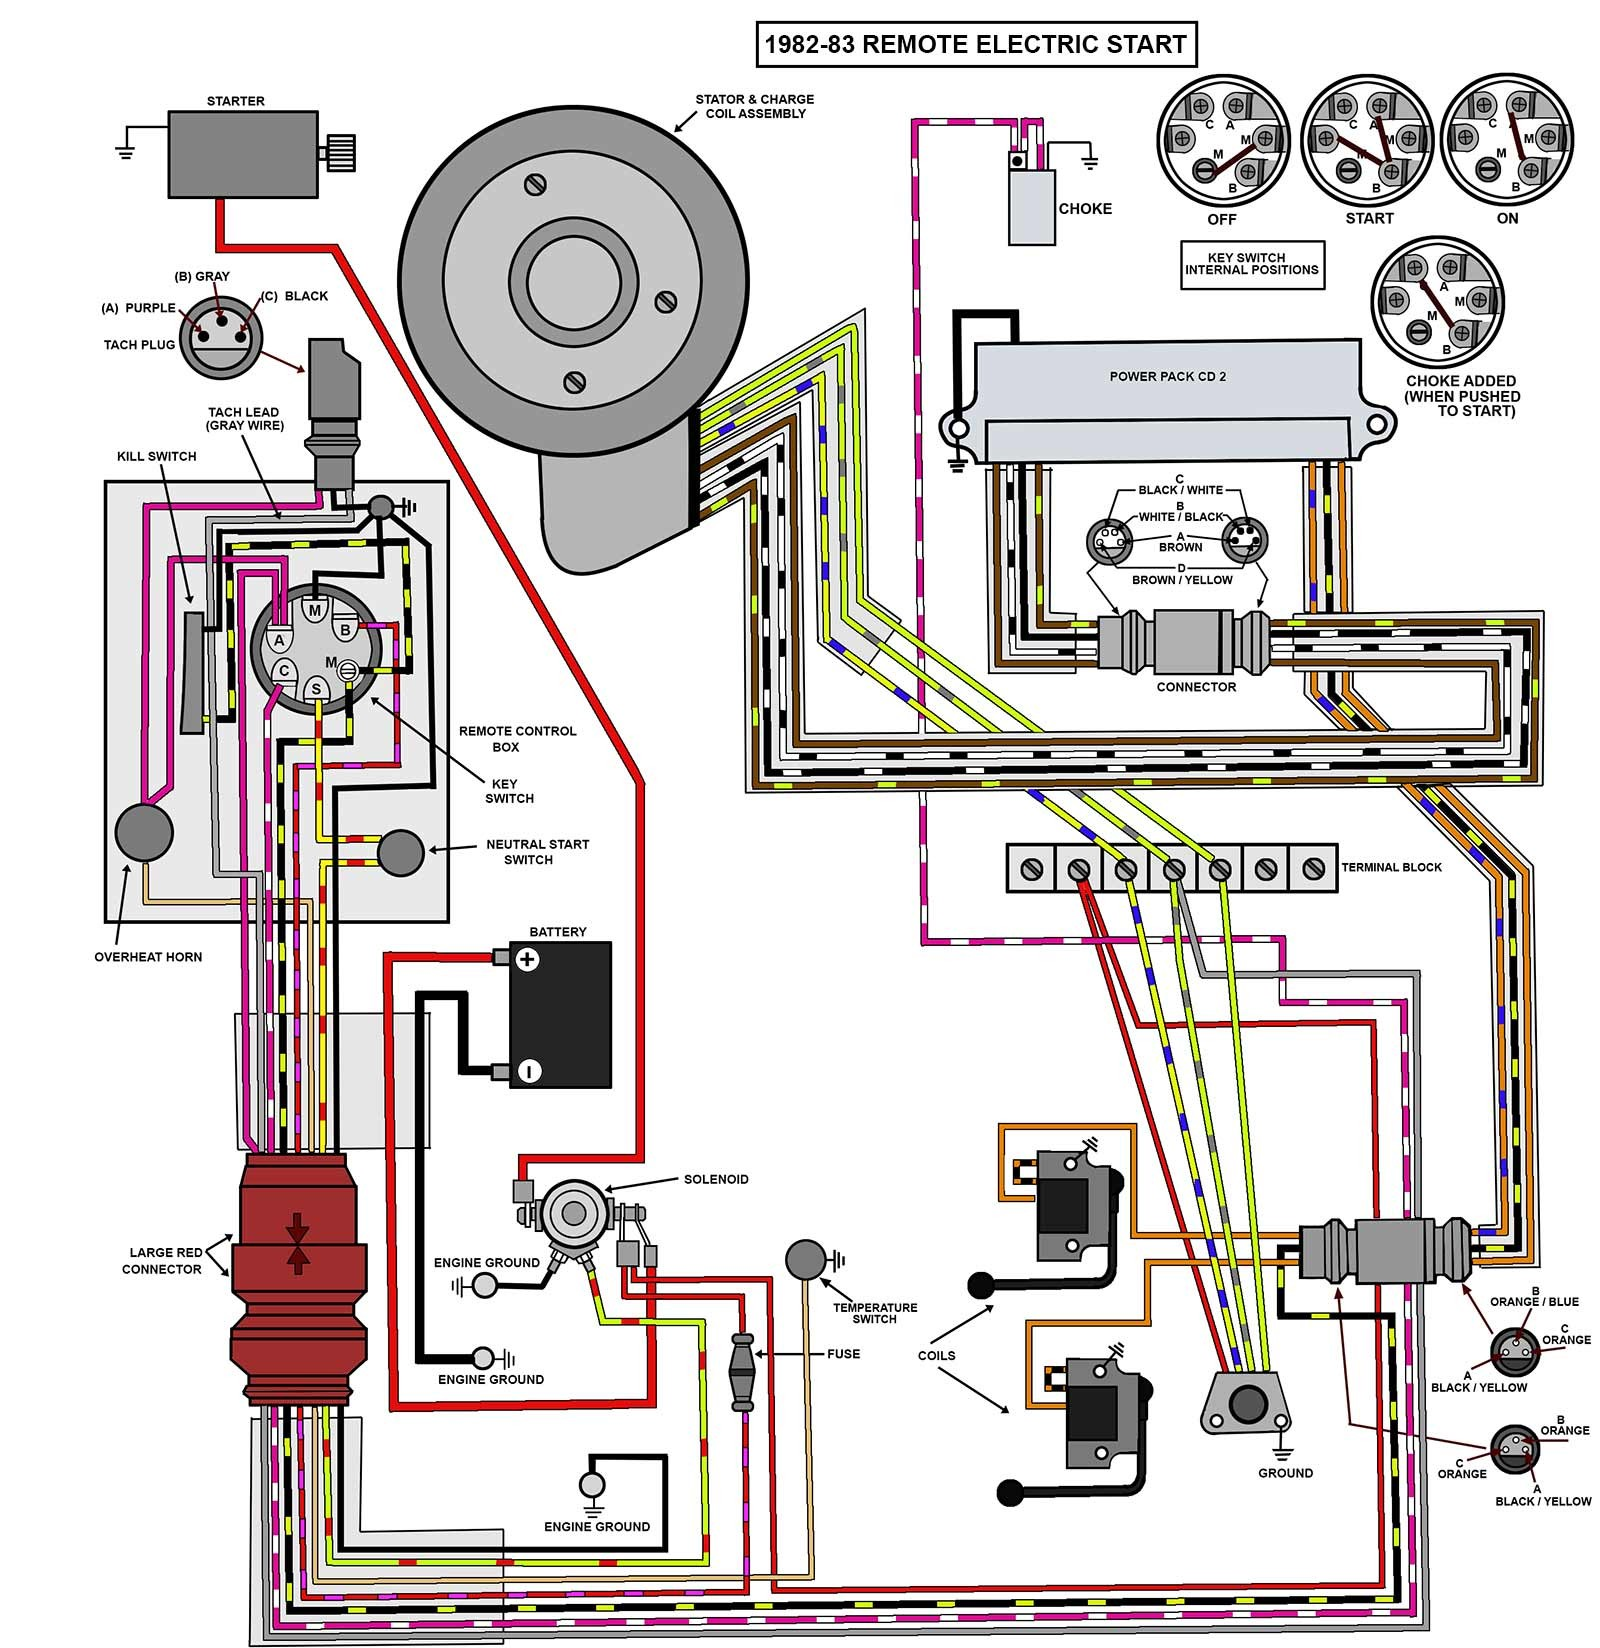 Outboard Engine Diagram Evinrude Johnson Outboard Wiring Diagrams Mastertech Marine Of Outboard Engine Diagram